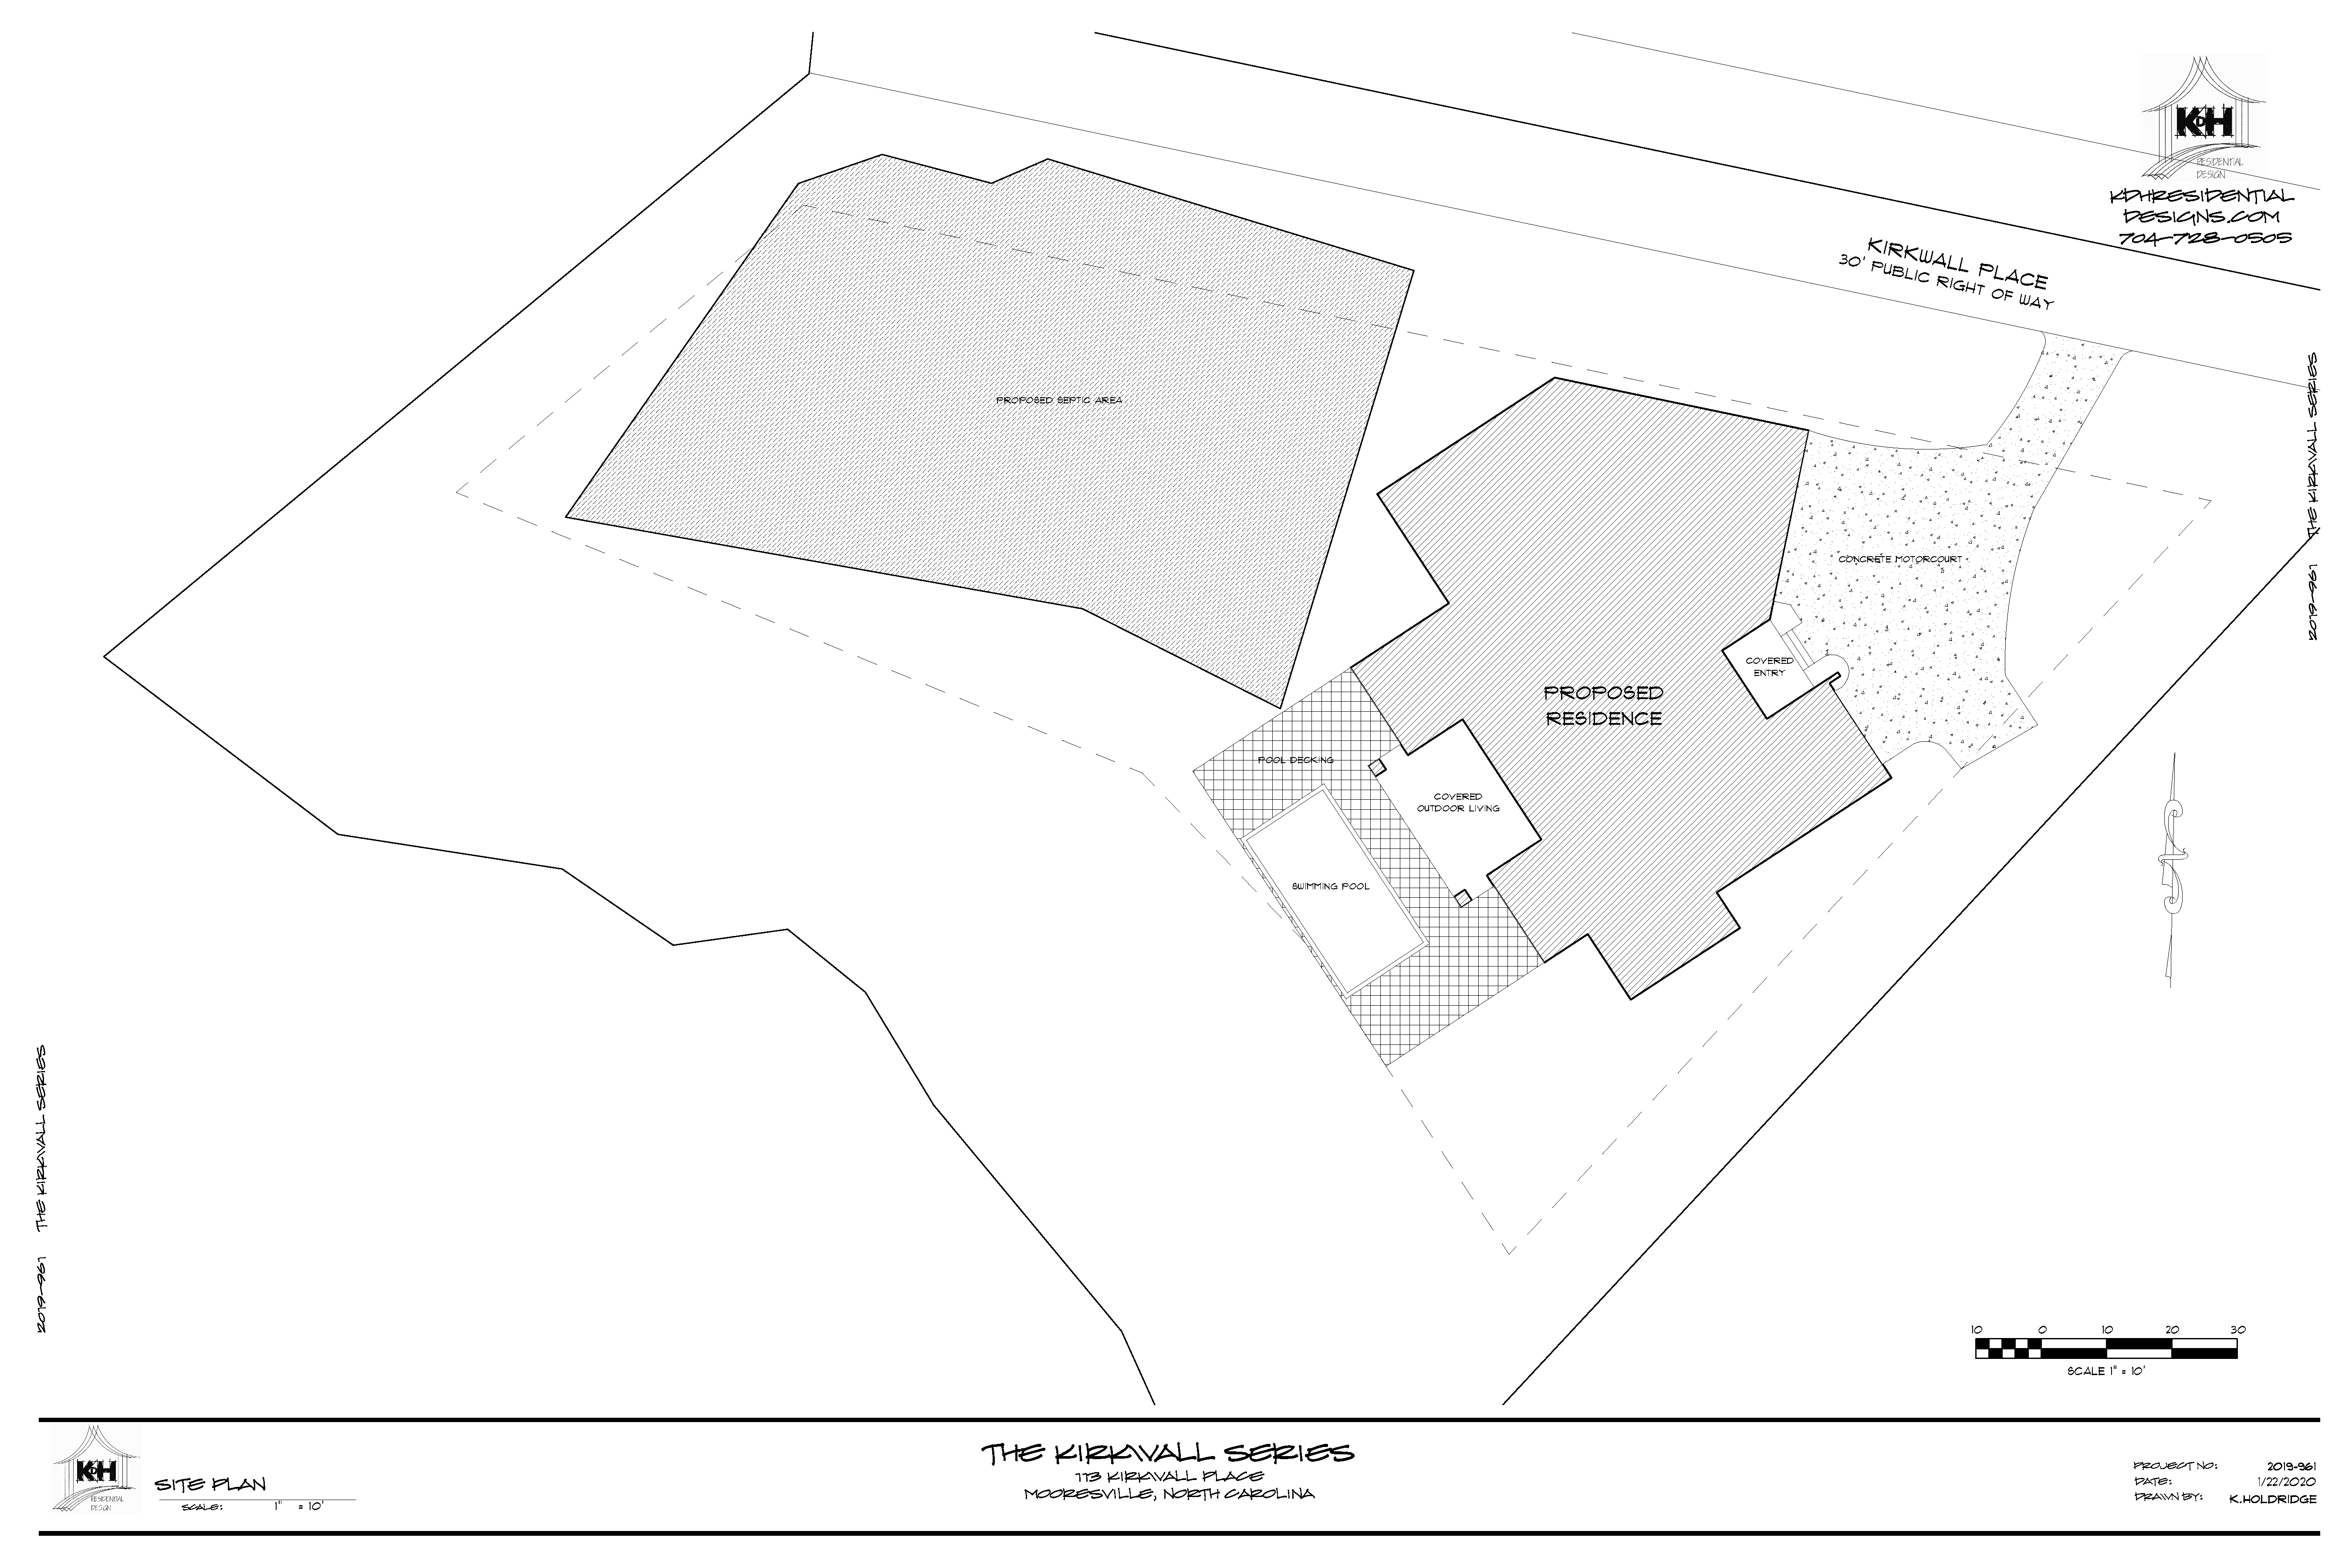 Site Plan for Proposed Home - 113 Kirkwall Place